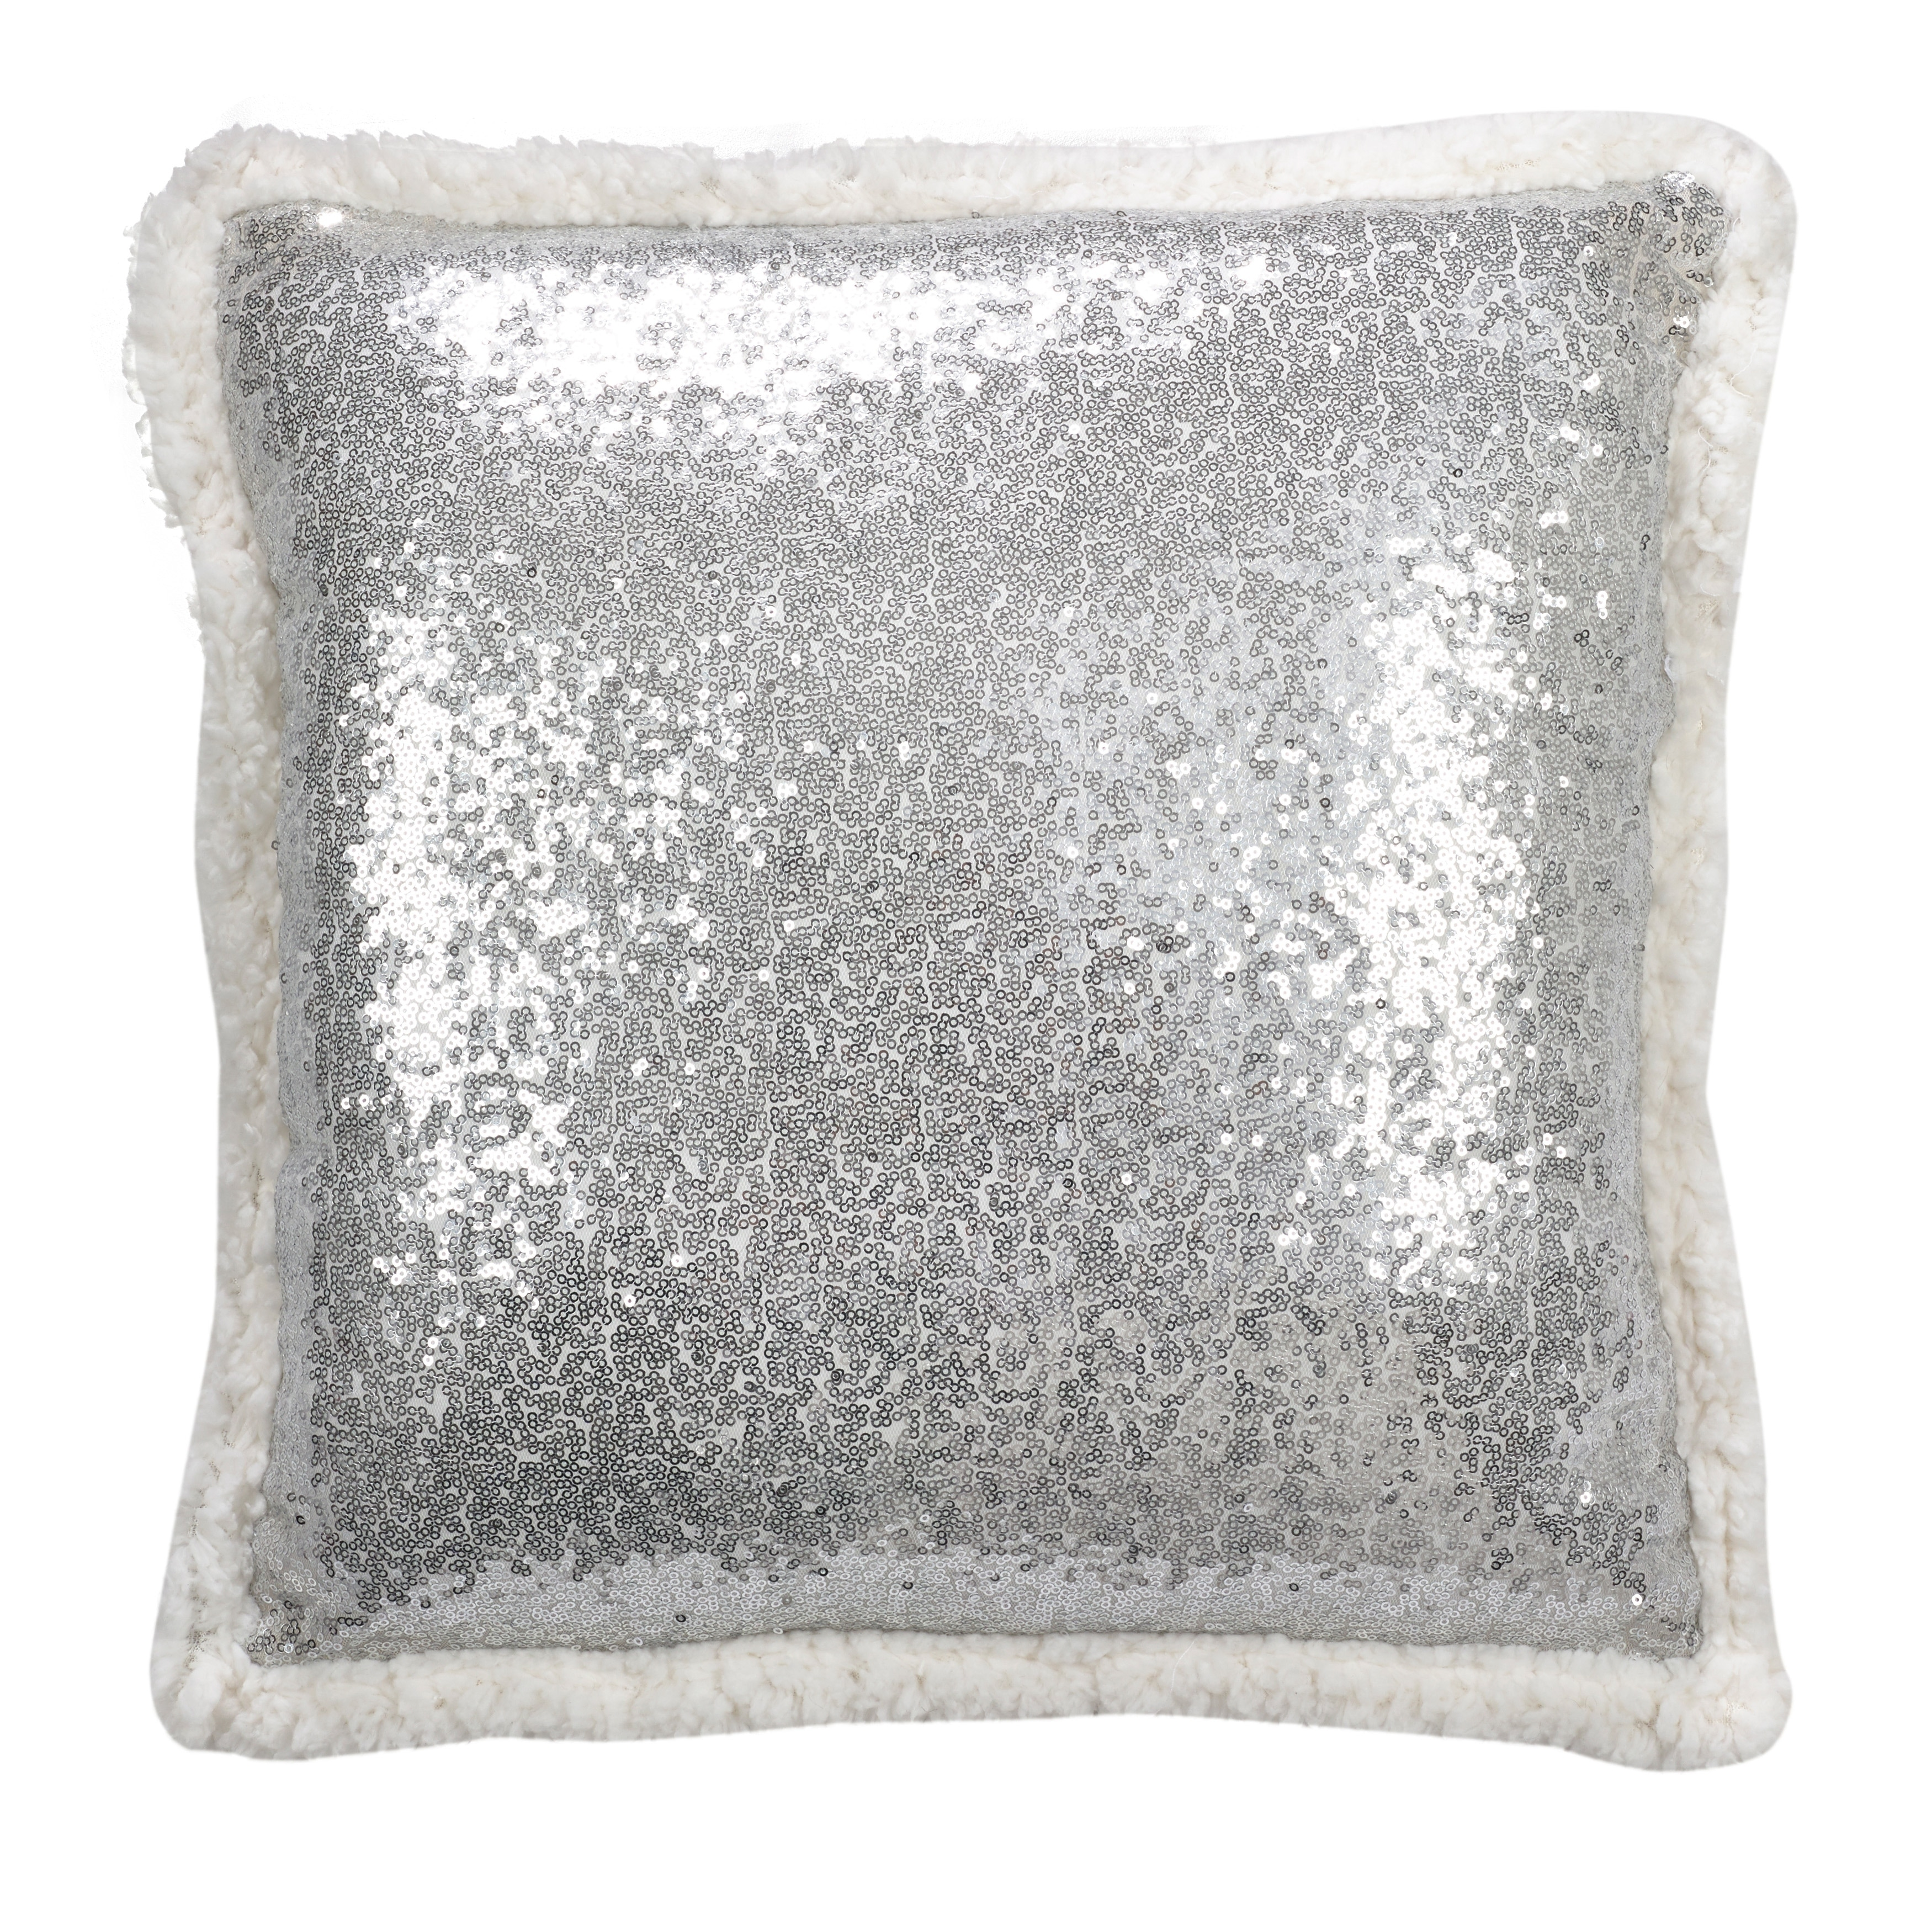 Silver Throw Pillows Online At Our Best Decorative Accessories Deals